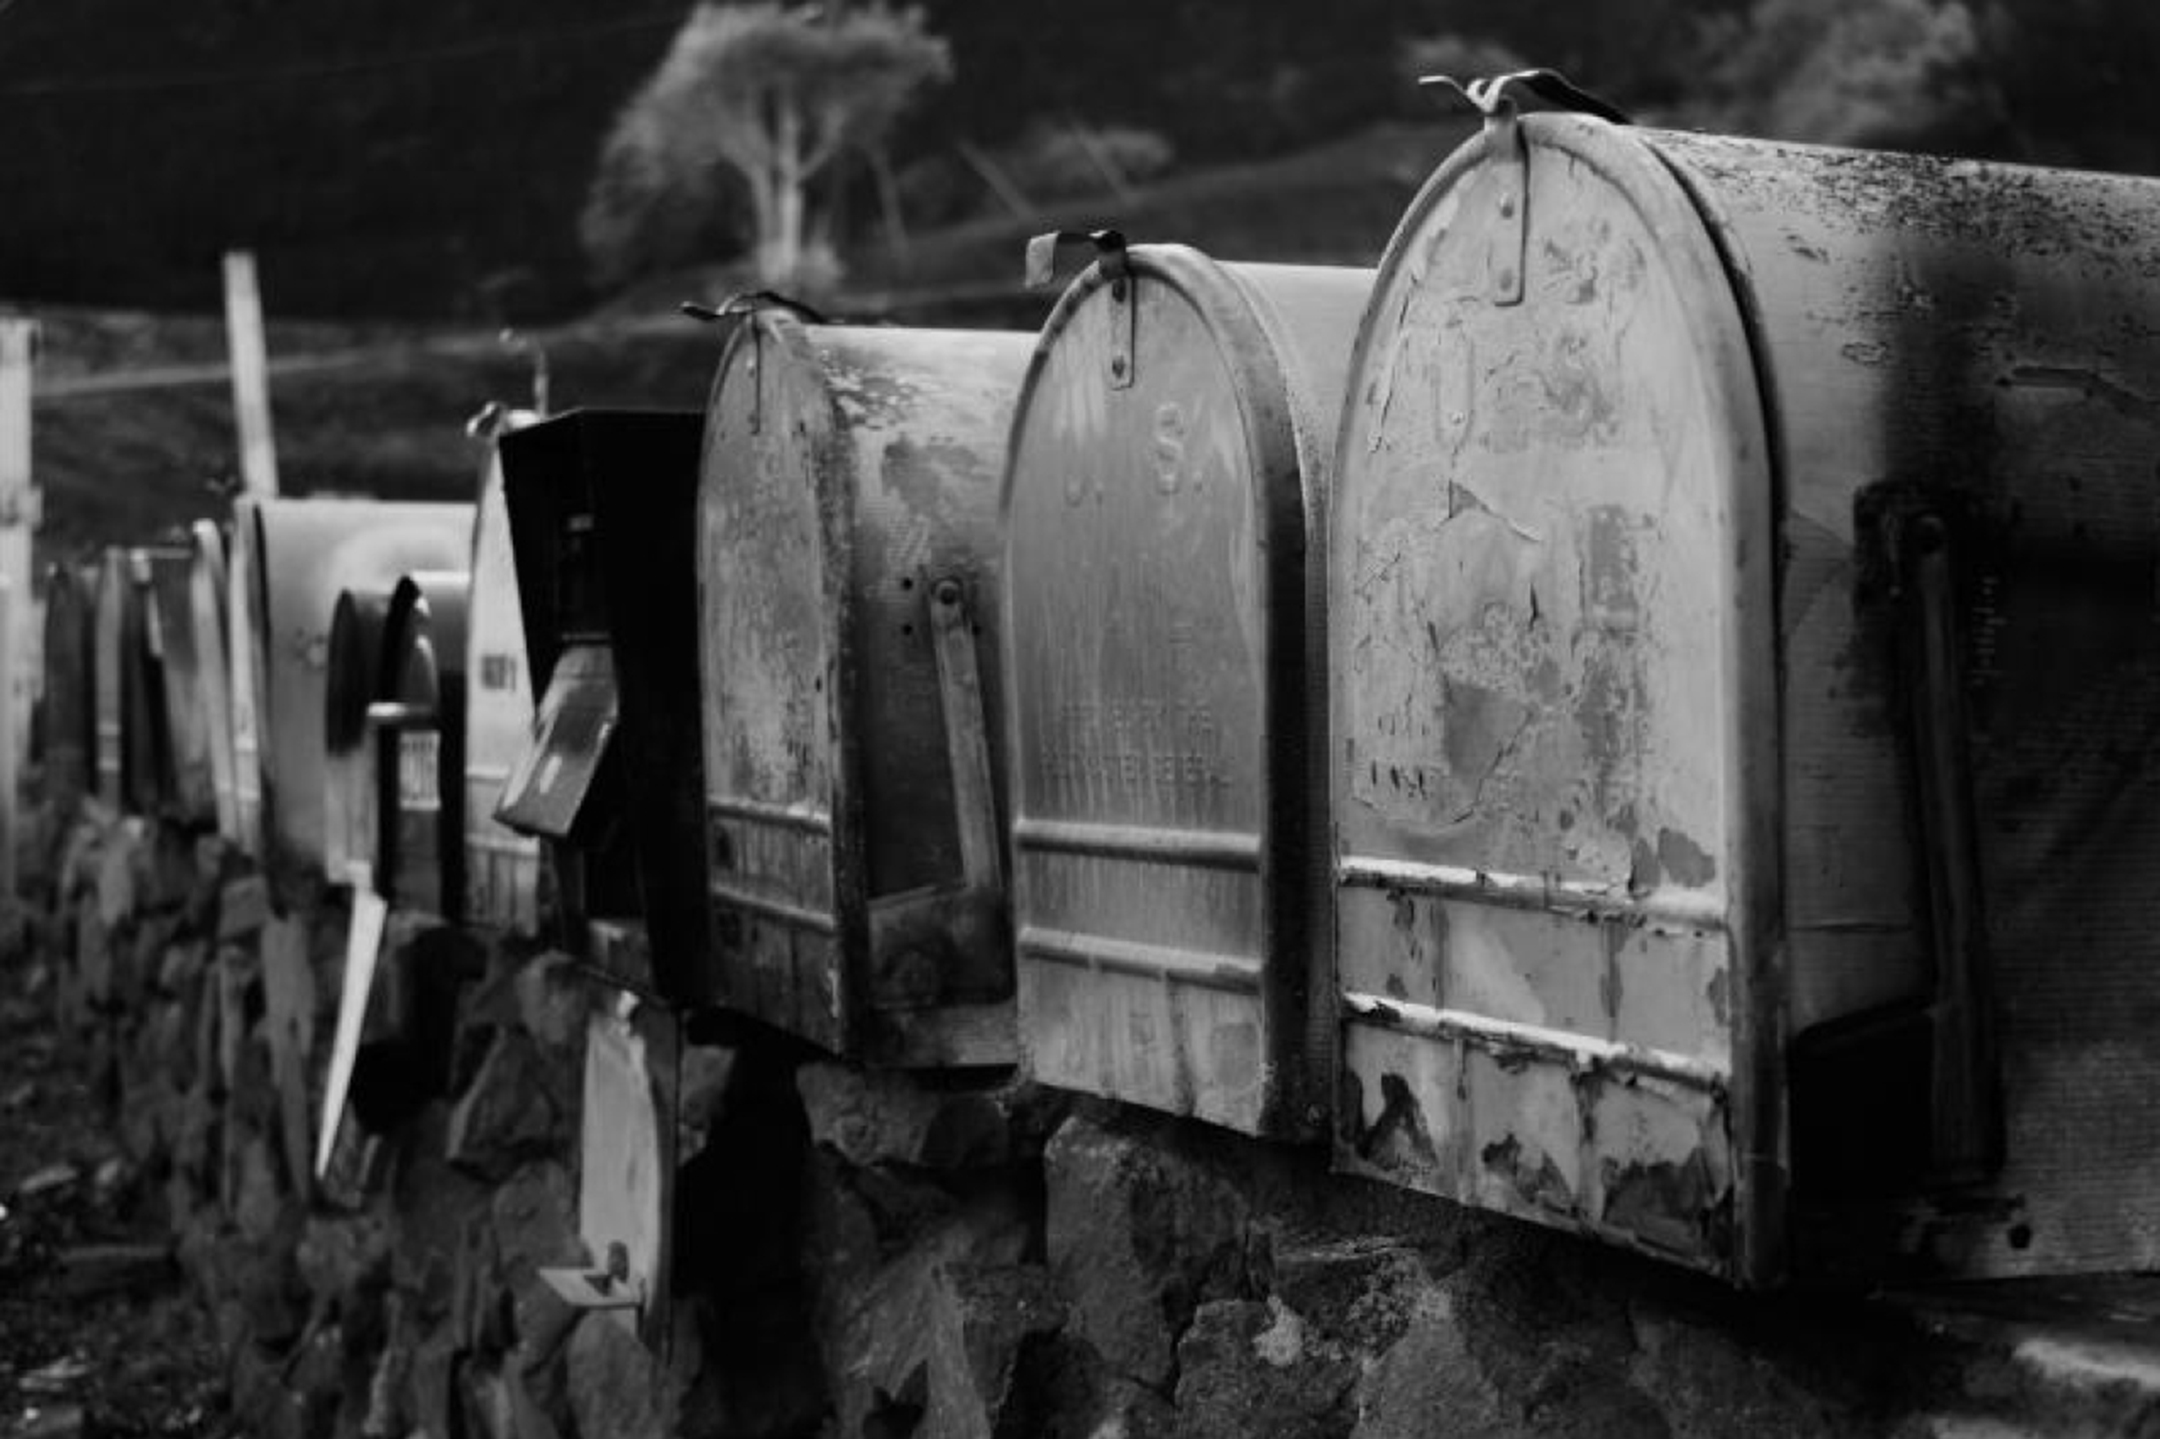 black and white photograph of a row of burned mailboxes